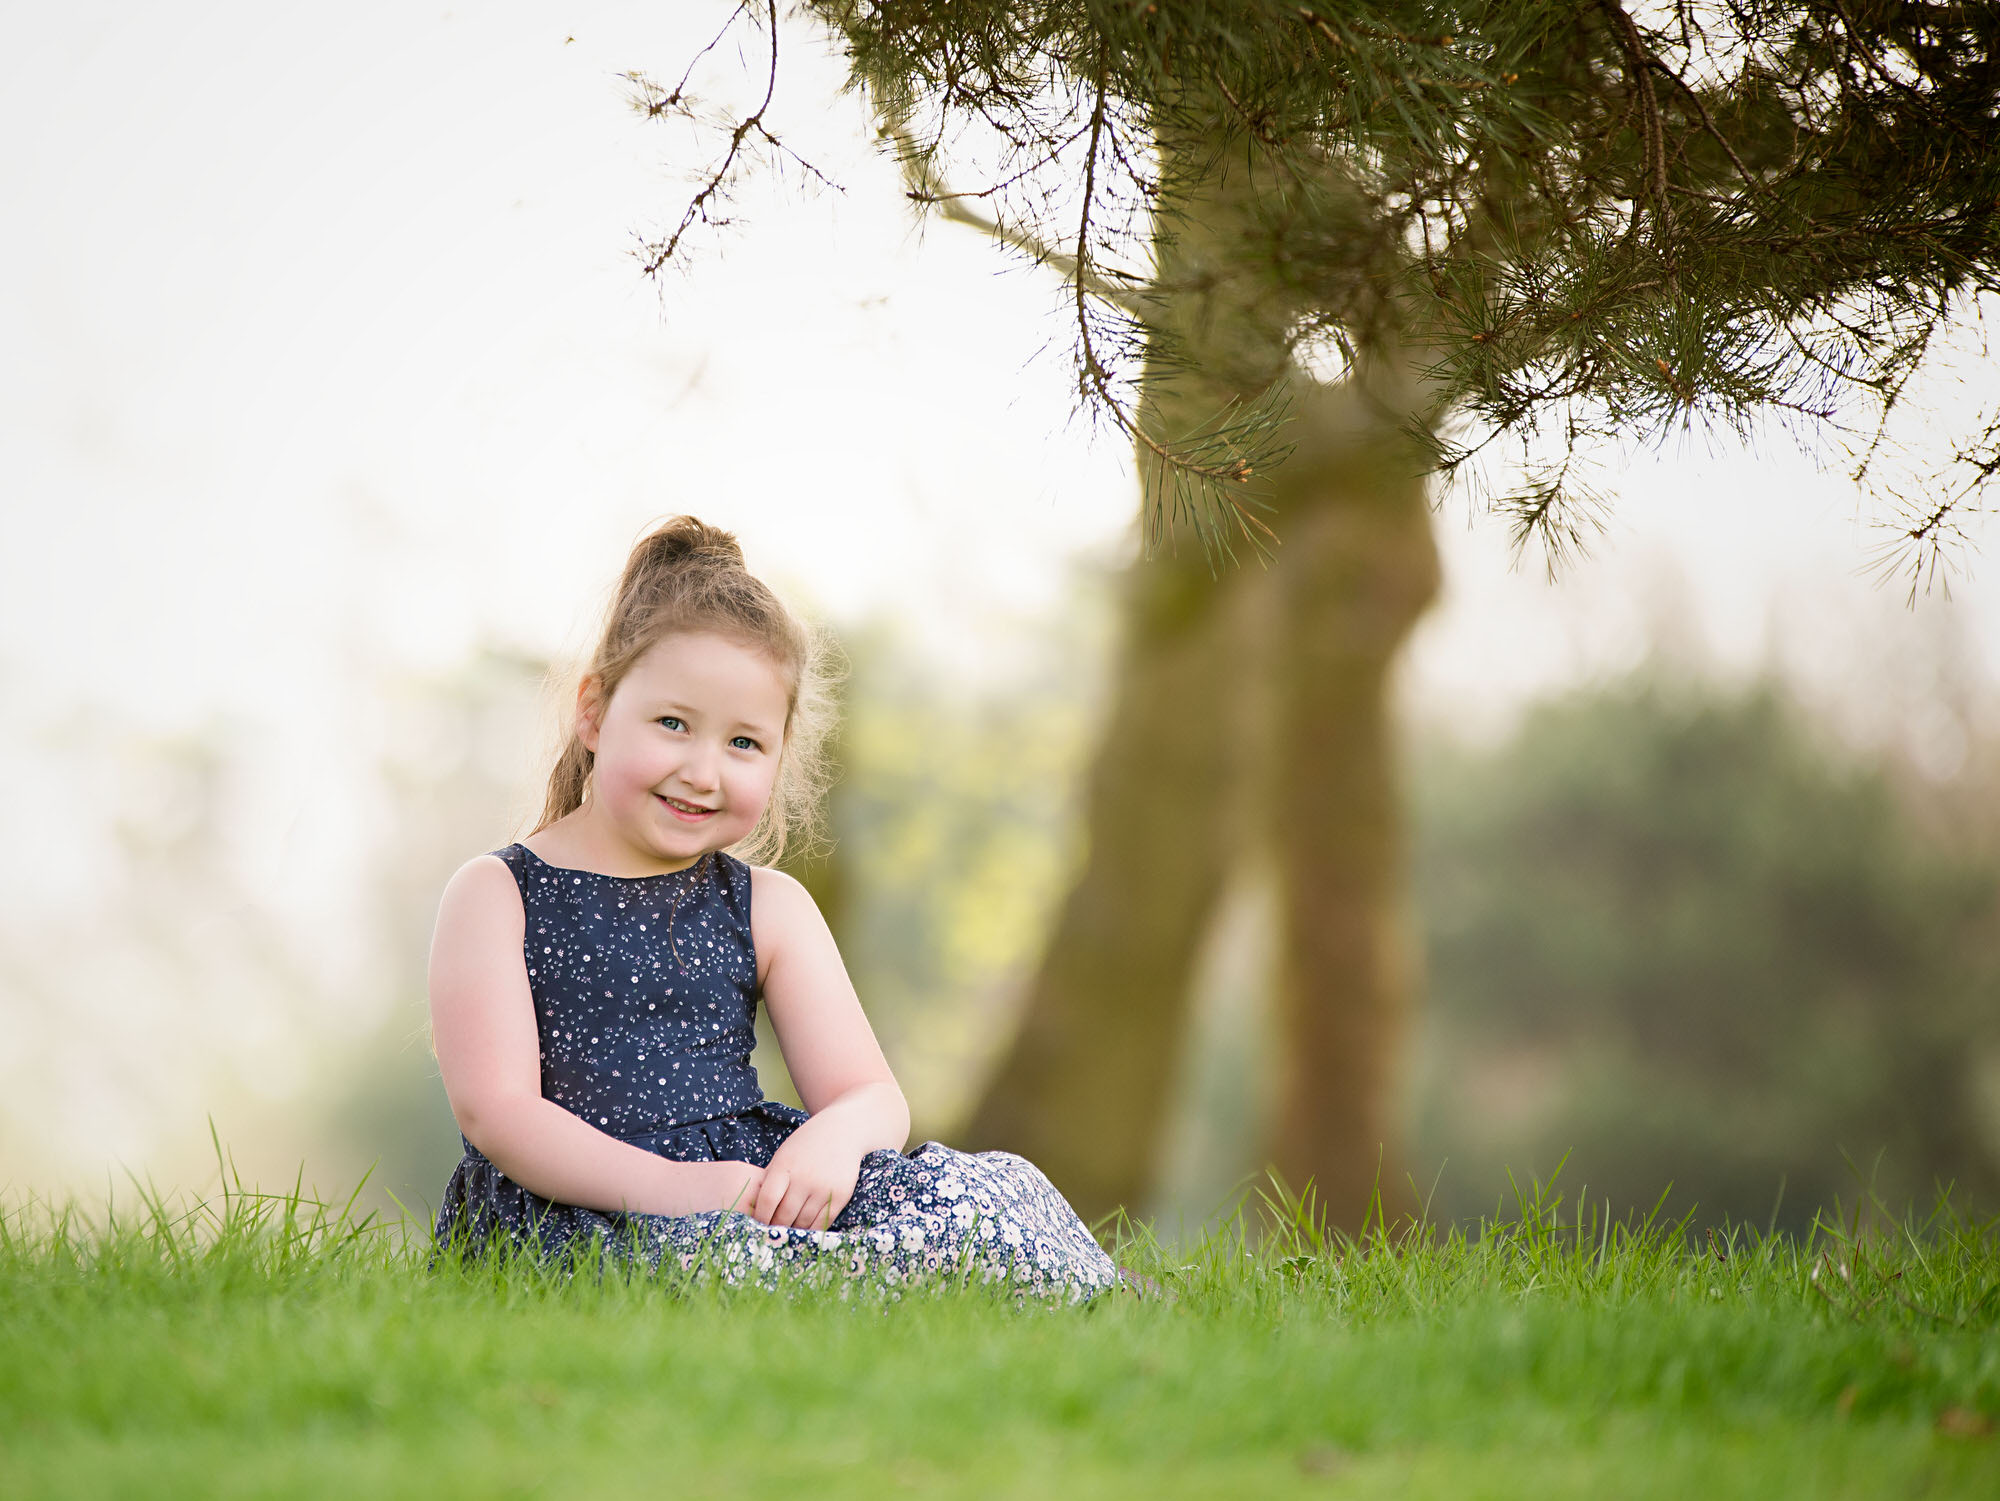 children photographer in Barnsley, outdoor spring shoot